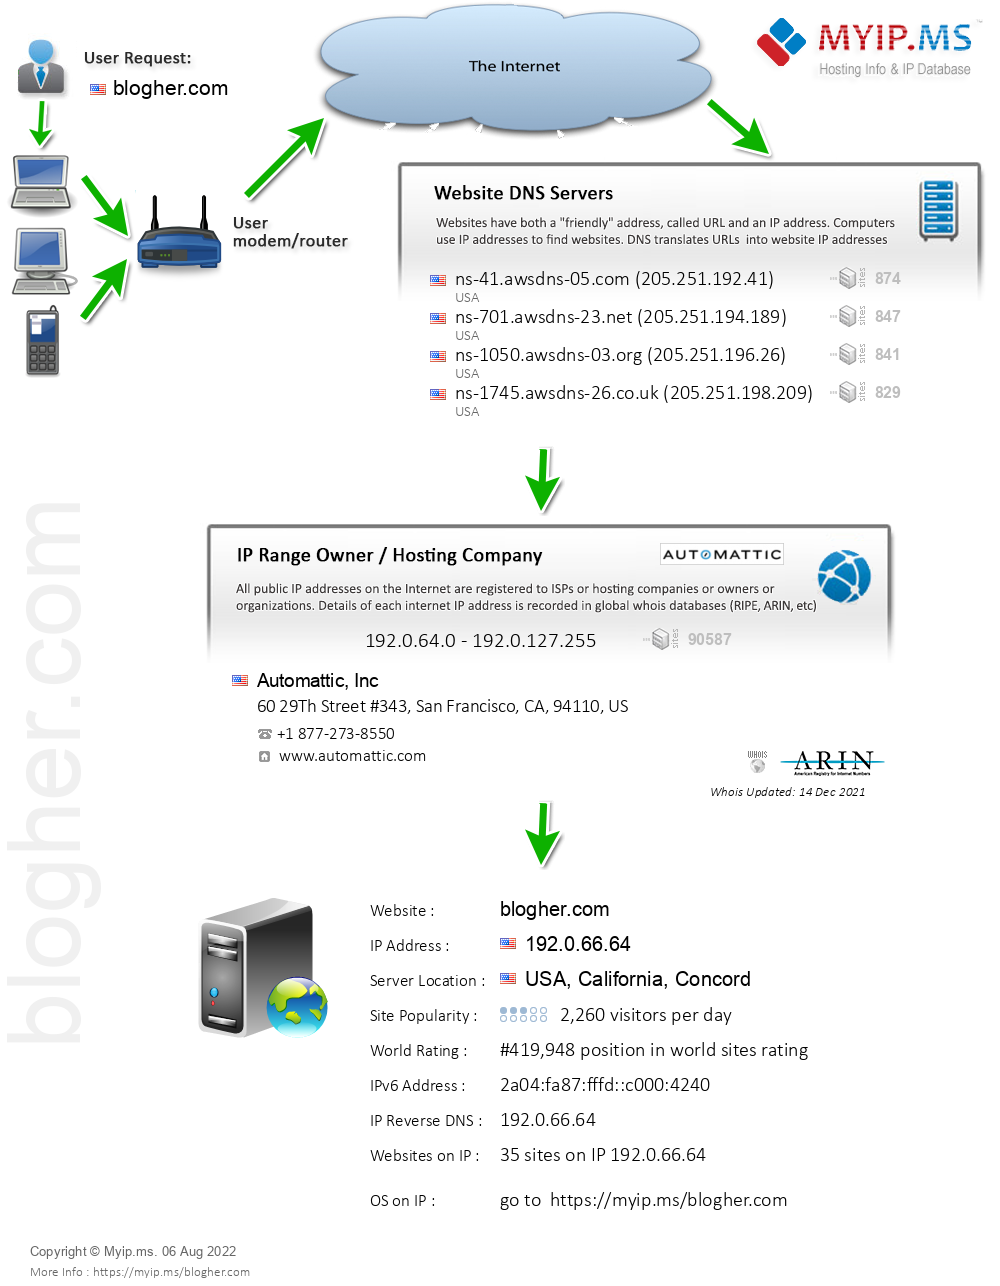 Blogher.com - Website Hosting Visual IP Diagram